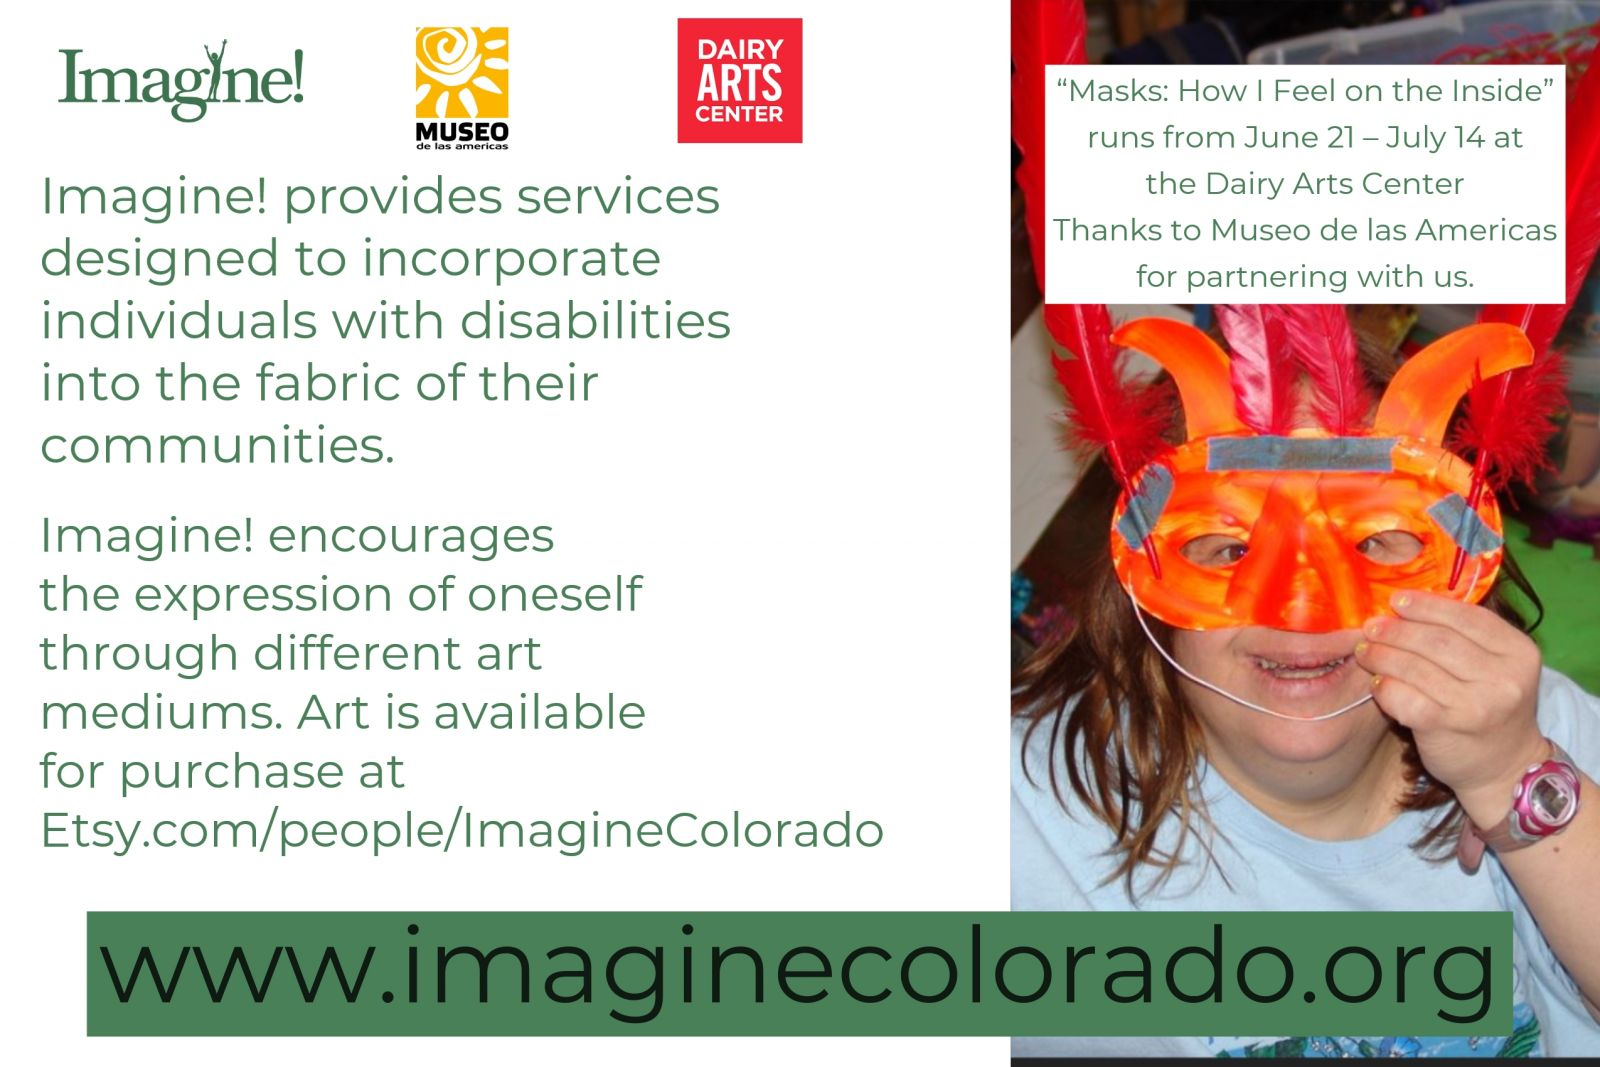 "The opening night reception of the Annual Imagine! CORE/Labor Source Art Show at Dairy Arts Center is set for June 21. Join us for art, music, and an appreciation of the amazing artists who accept services from Imagine!. The art show, ""Masks: How I Feel on the Inside"" runs from June 21 – July 14. We're also very excited to team up with Museo Denver for this exhibit!"